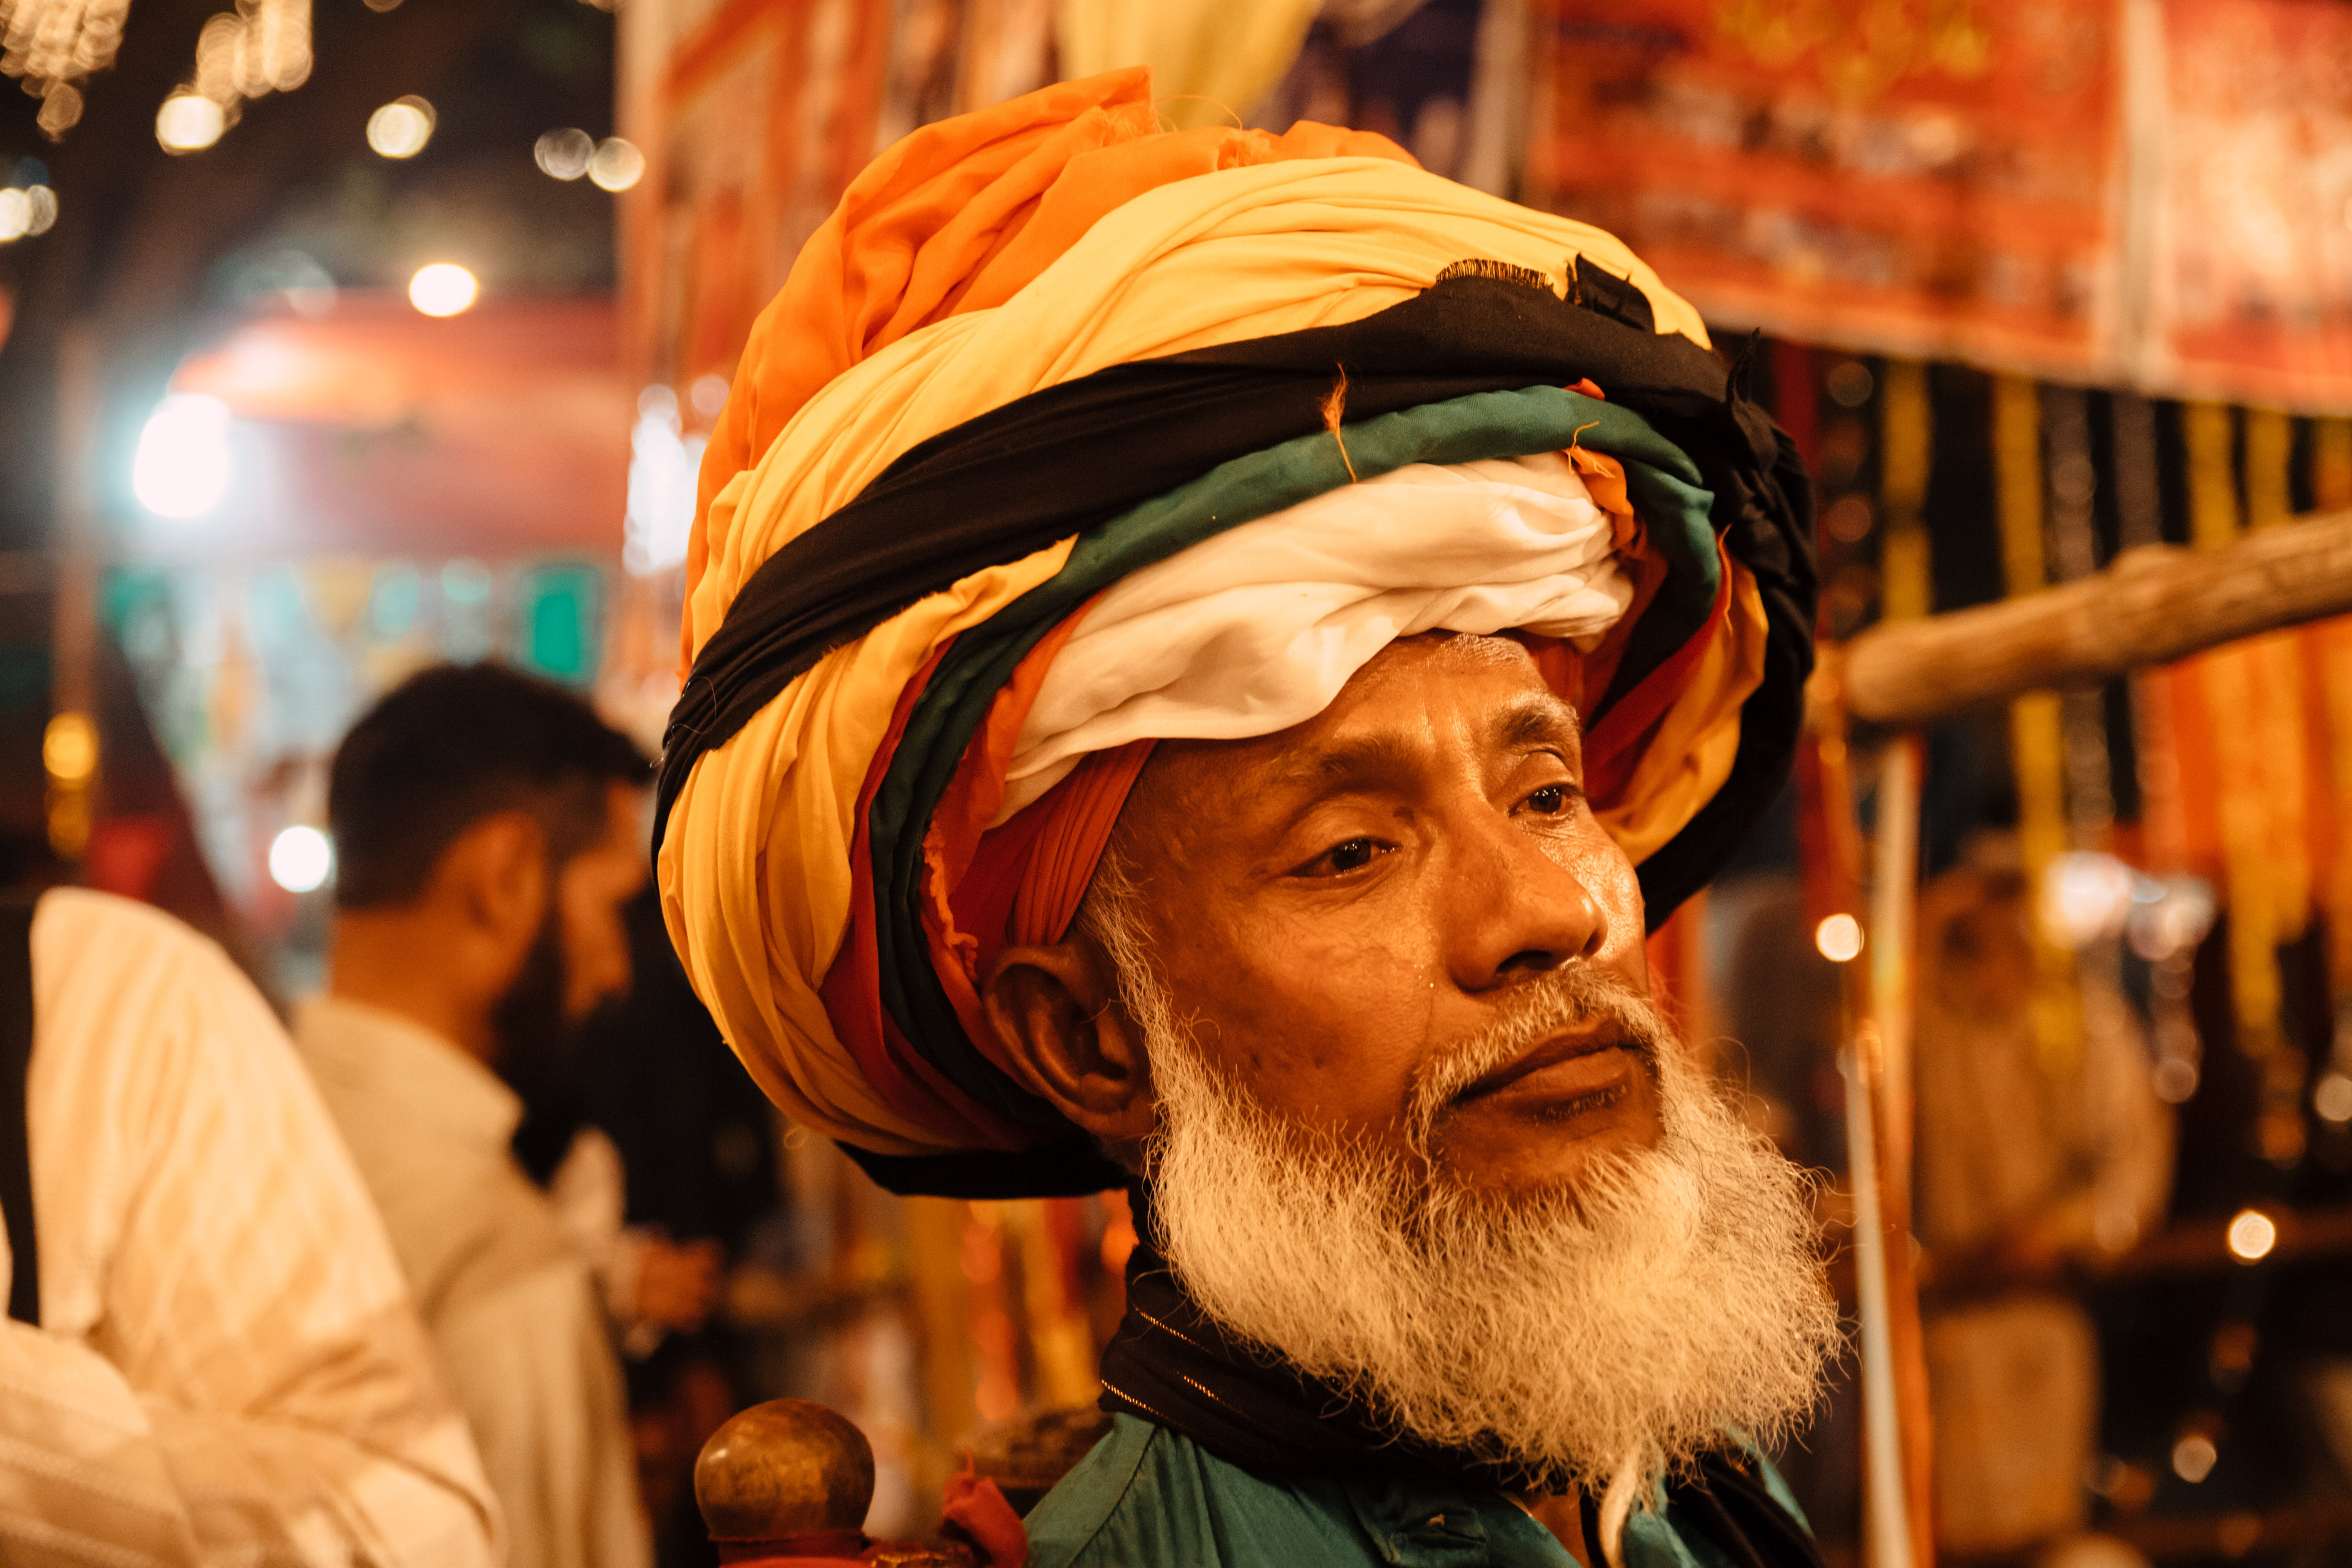 Man in an Orange, Yellow and Black Turban